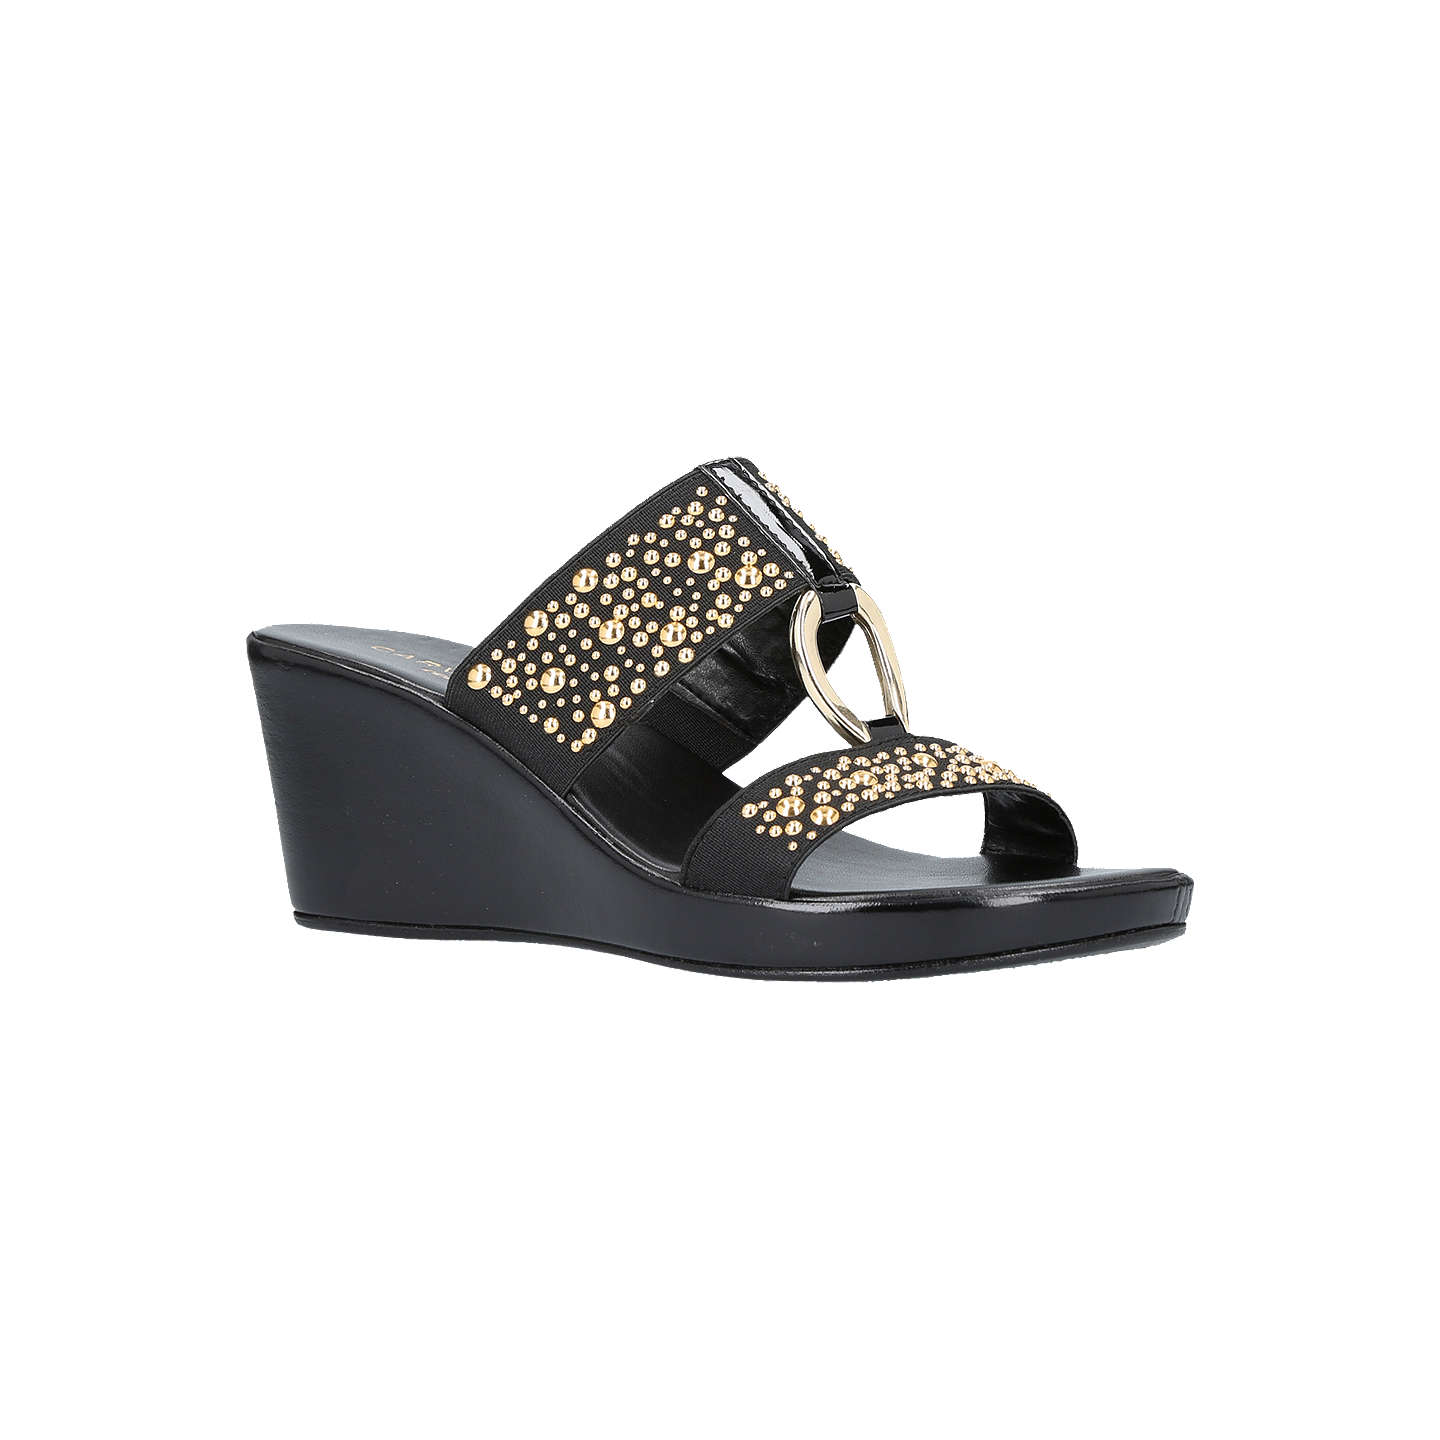 BuyCarvela Comfort Salt Wedge Heel Sandals, Black, 3 Online at johnlewis.com